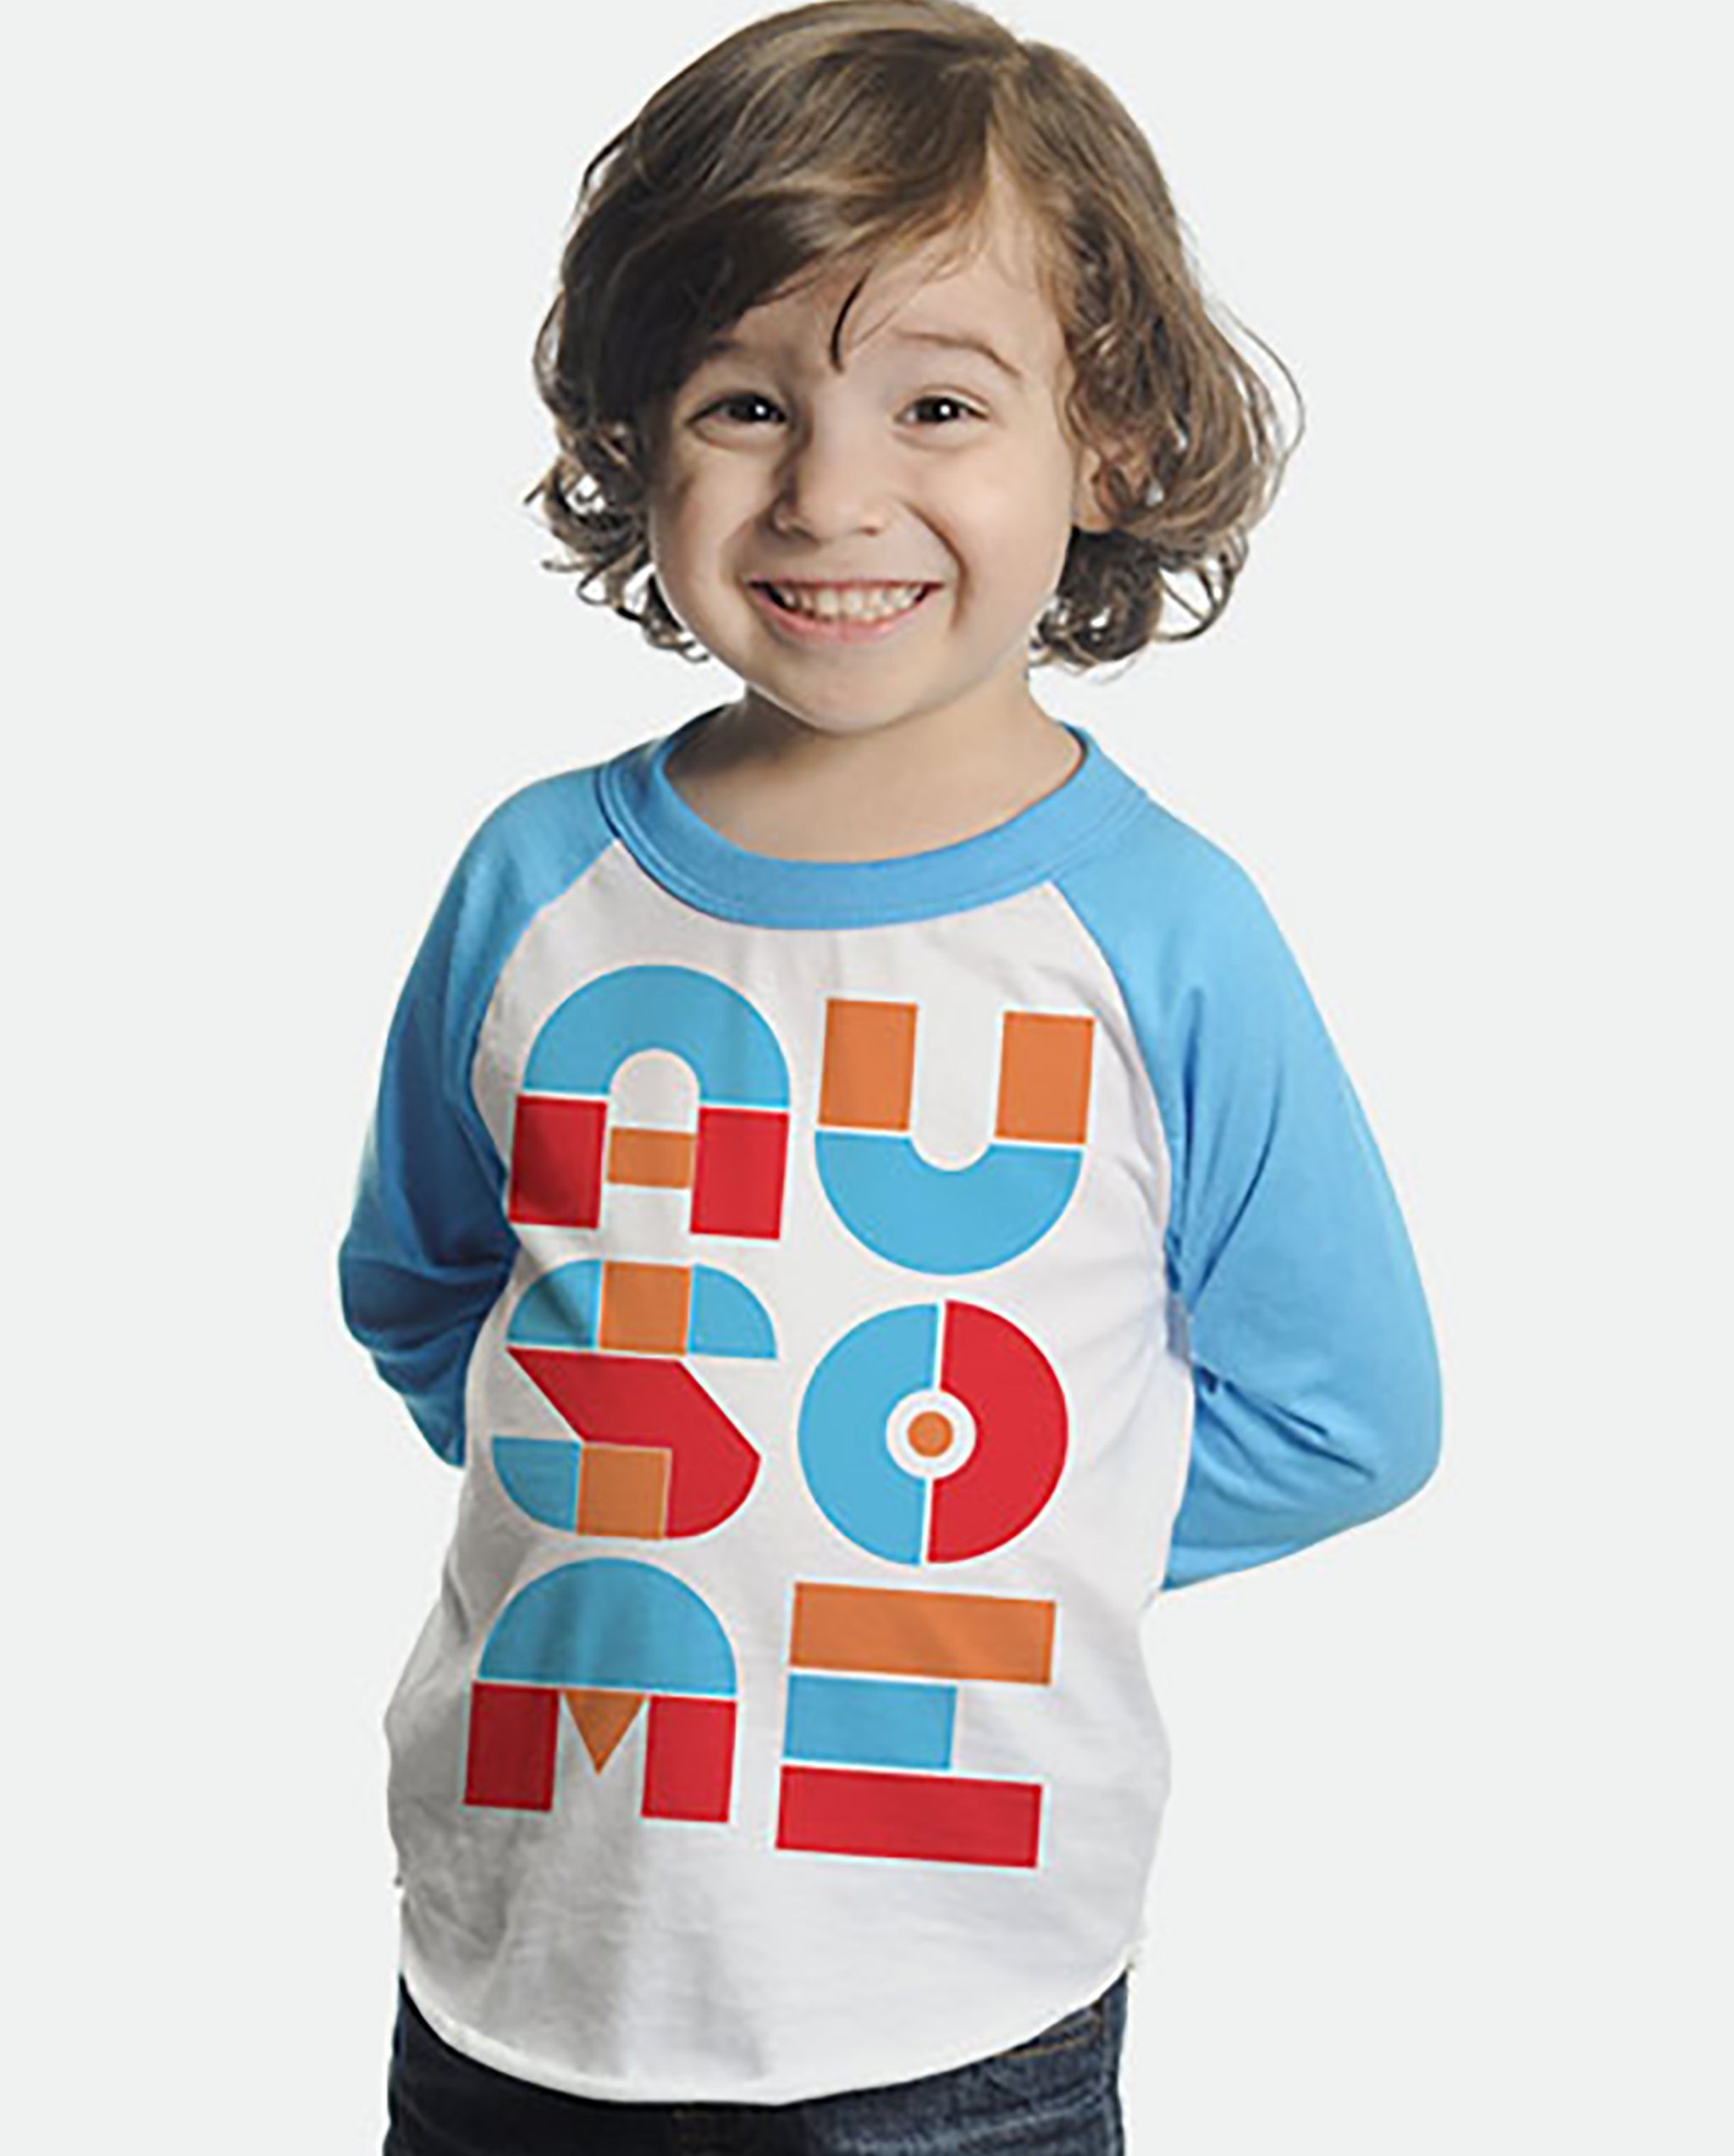 Ausome Kids & Baby 3/4 Sleeve Baseball Tee